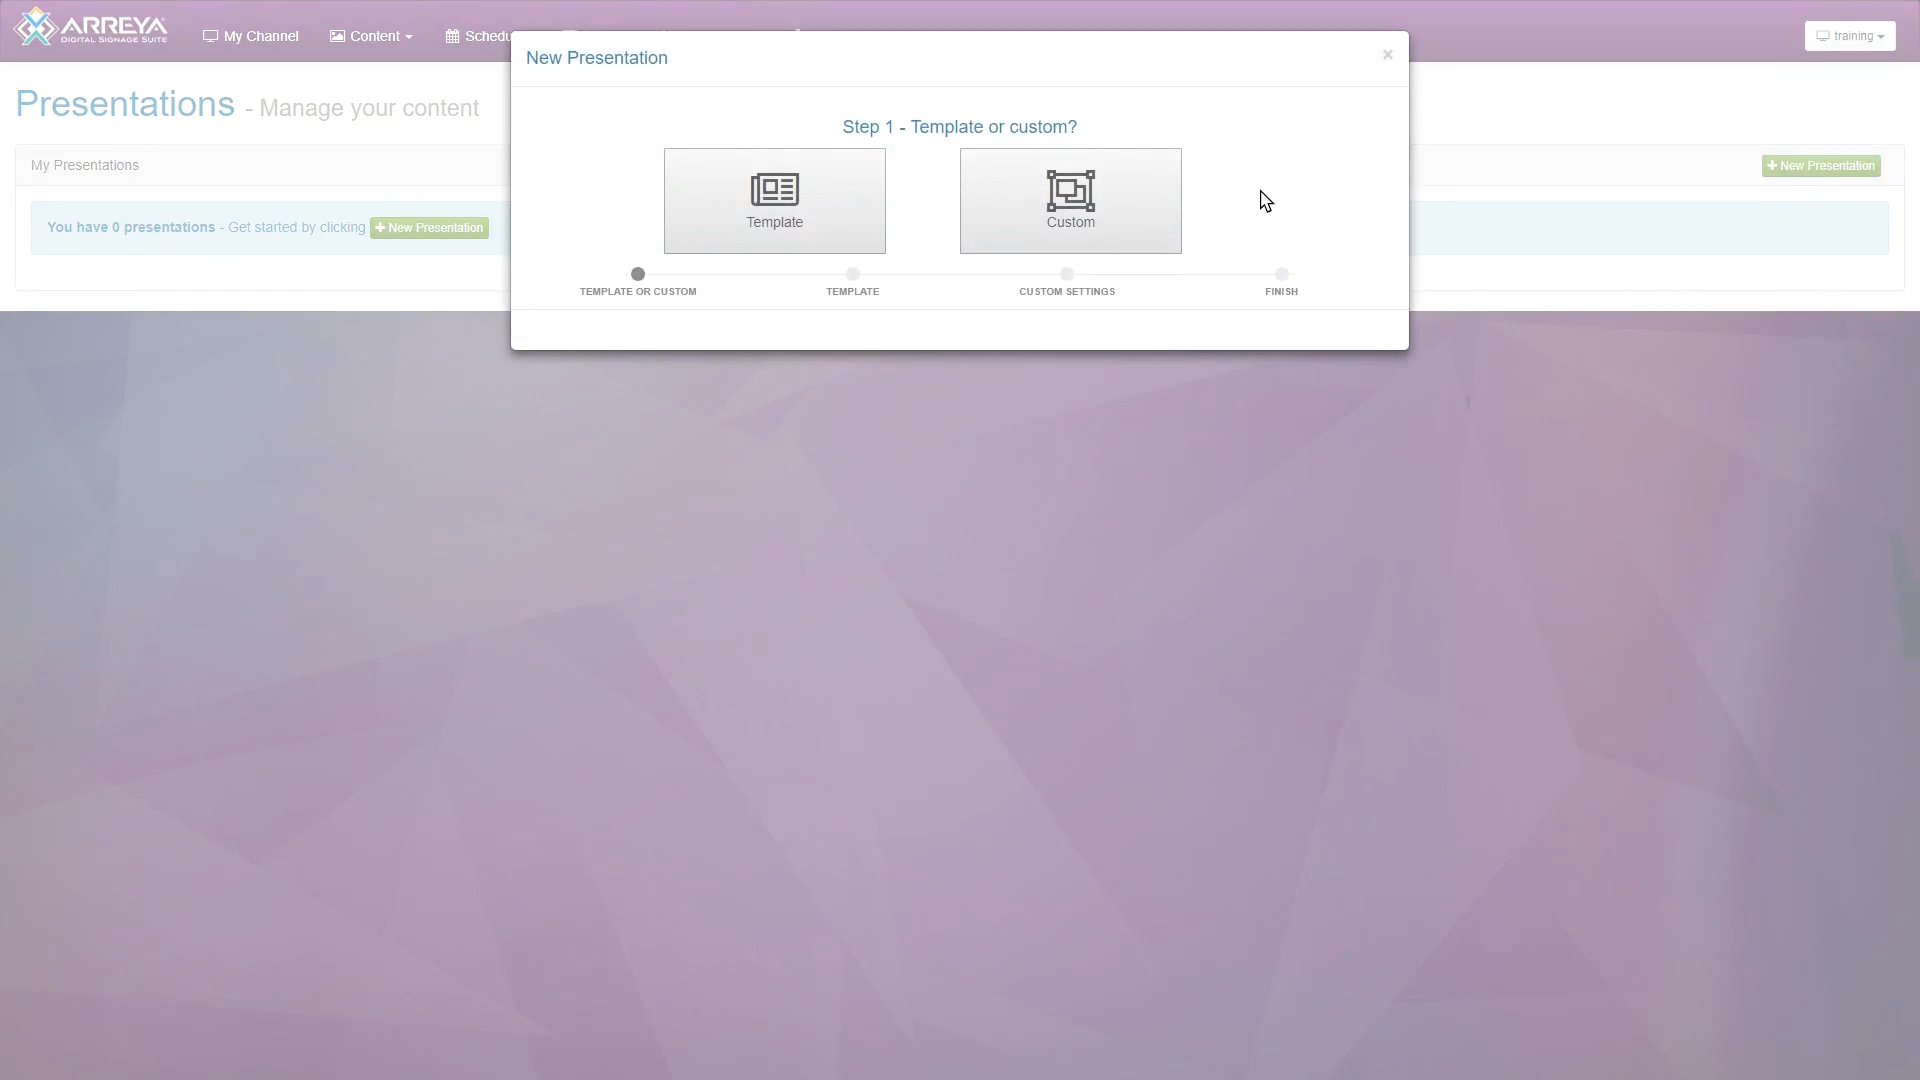 Users can choose whether to create their presentation from scratch or using a pre-built template